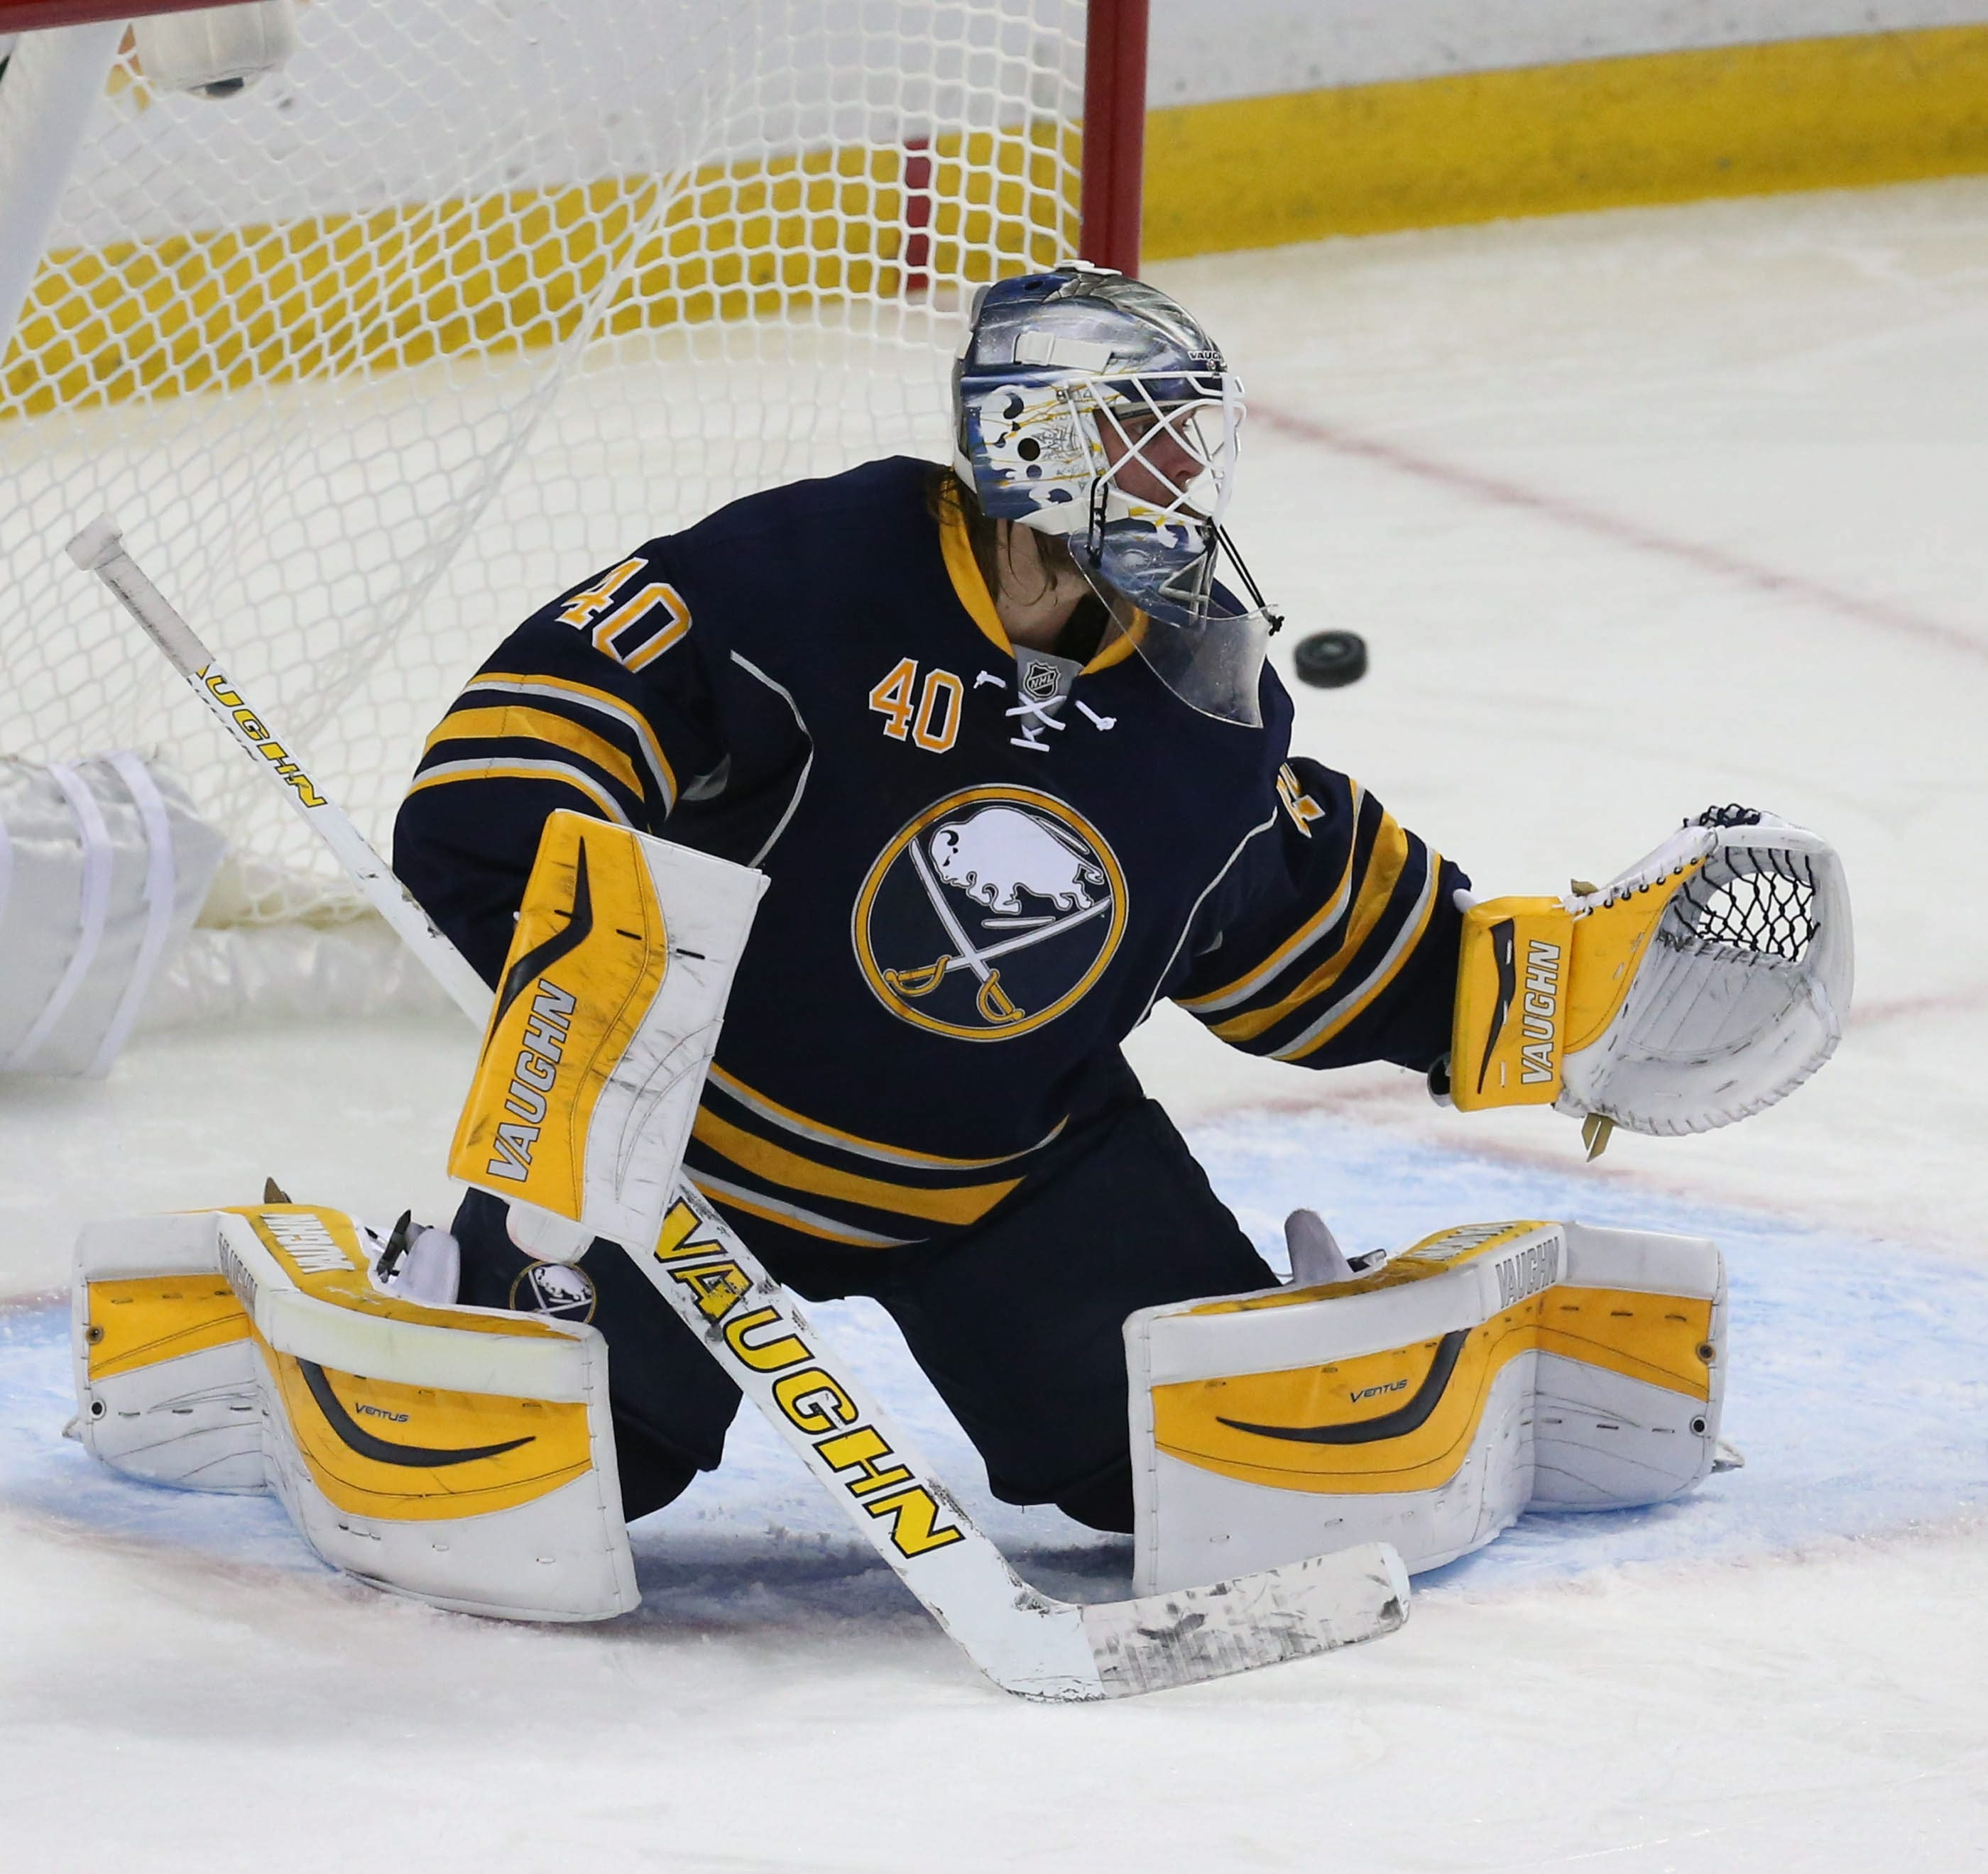 Robin Lehner lasted a little more than 26 minutes in Tuesday's loss to the Rangers but had a good practice Wednesday.